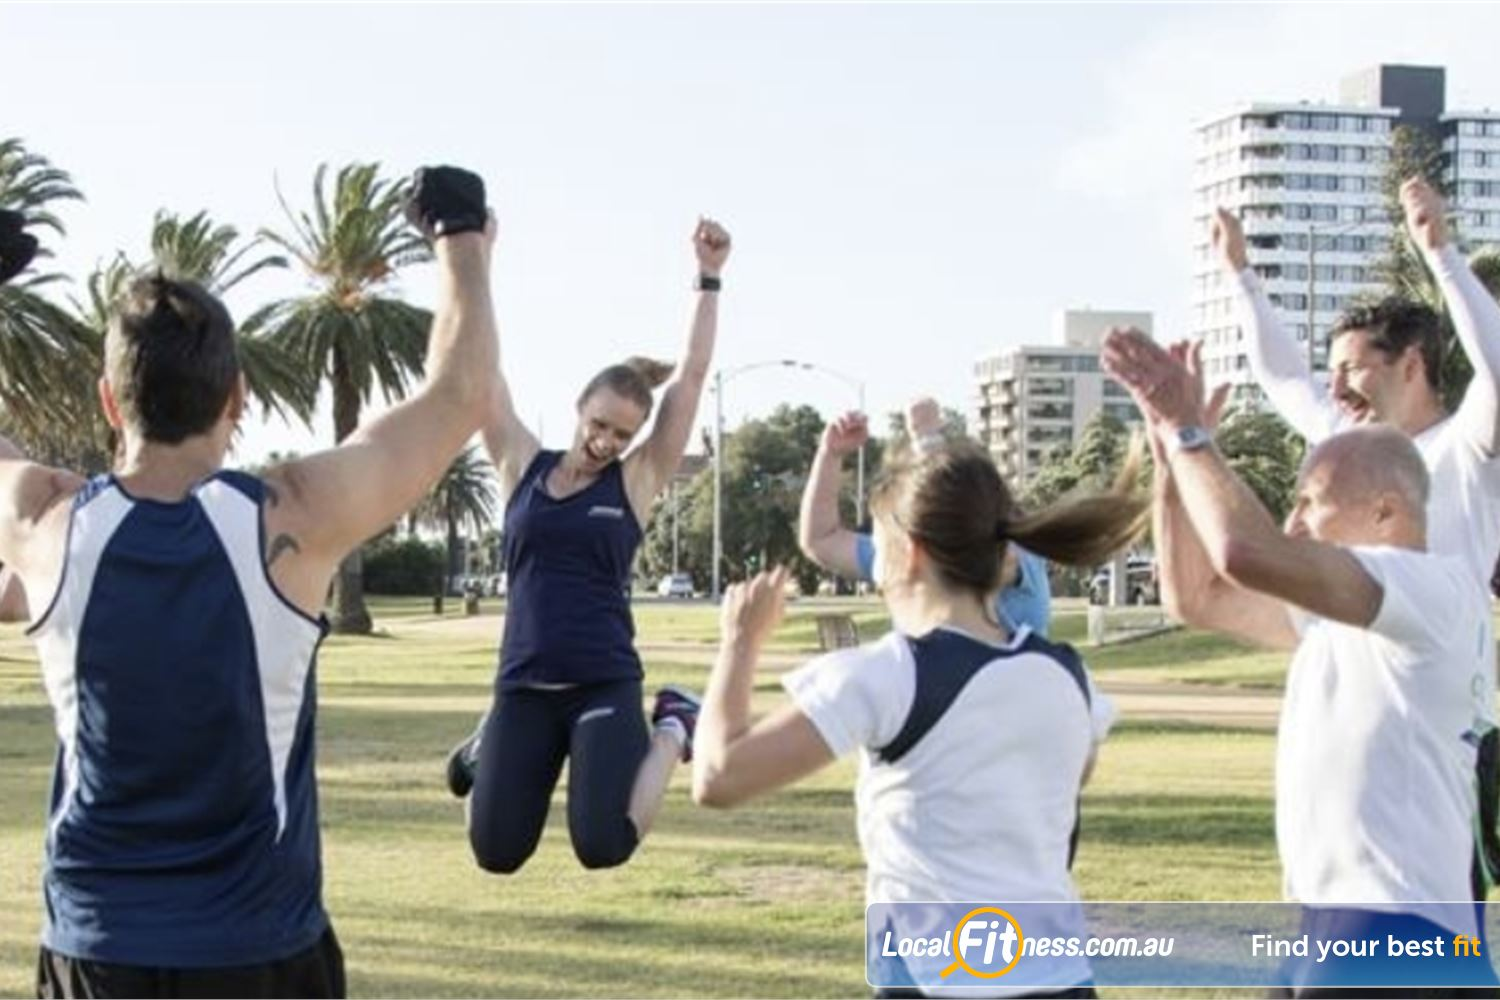 Step into Life Essendon Welcome to Step into Life Essendon Outdoor Group Training.